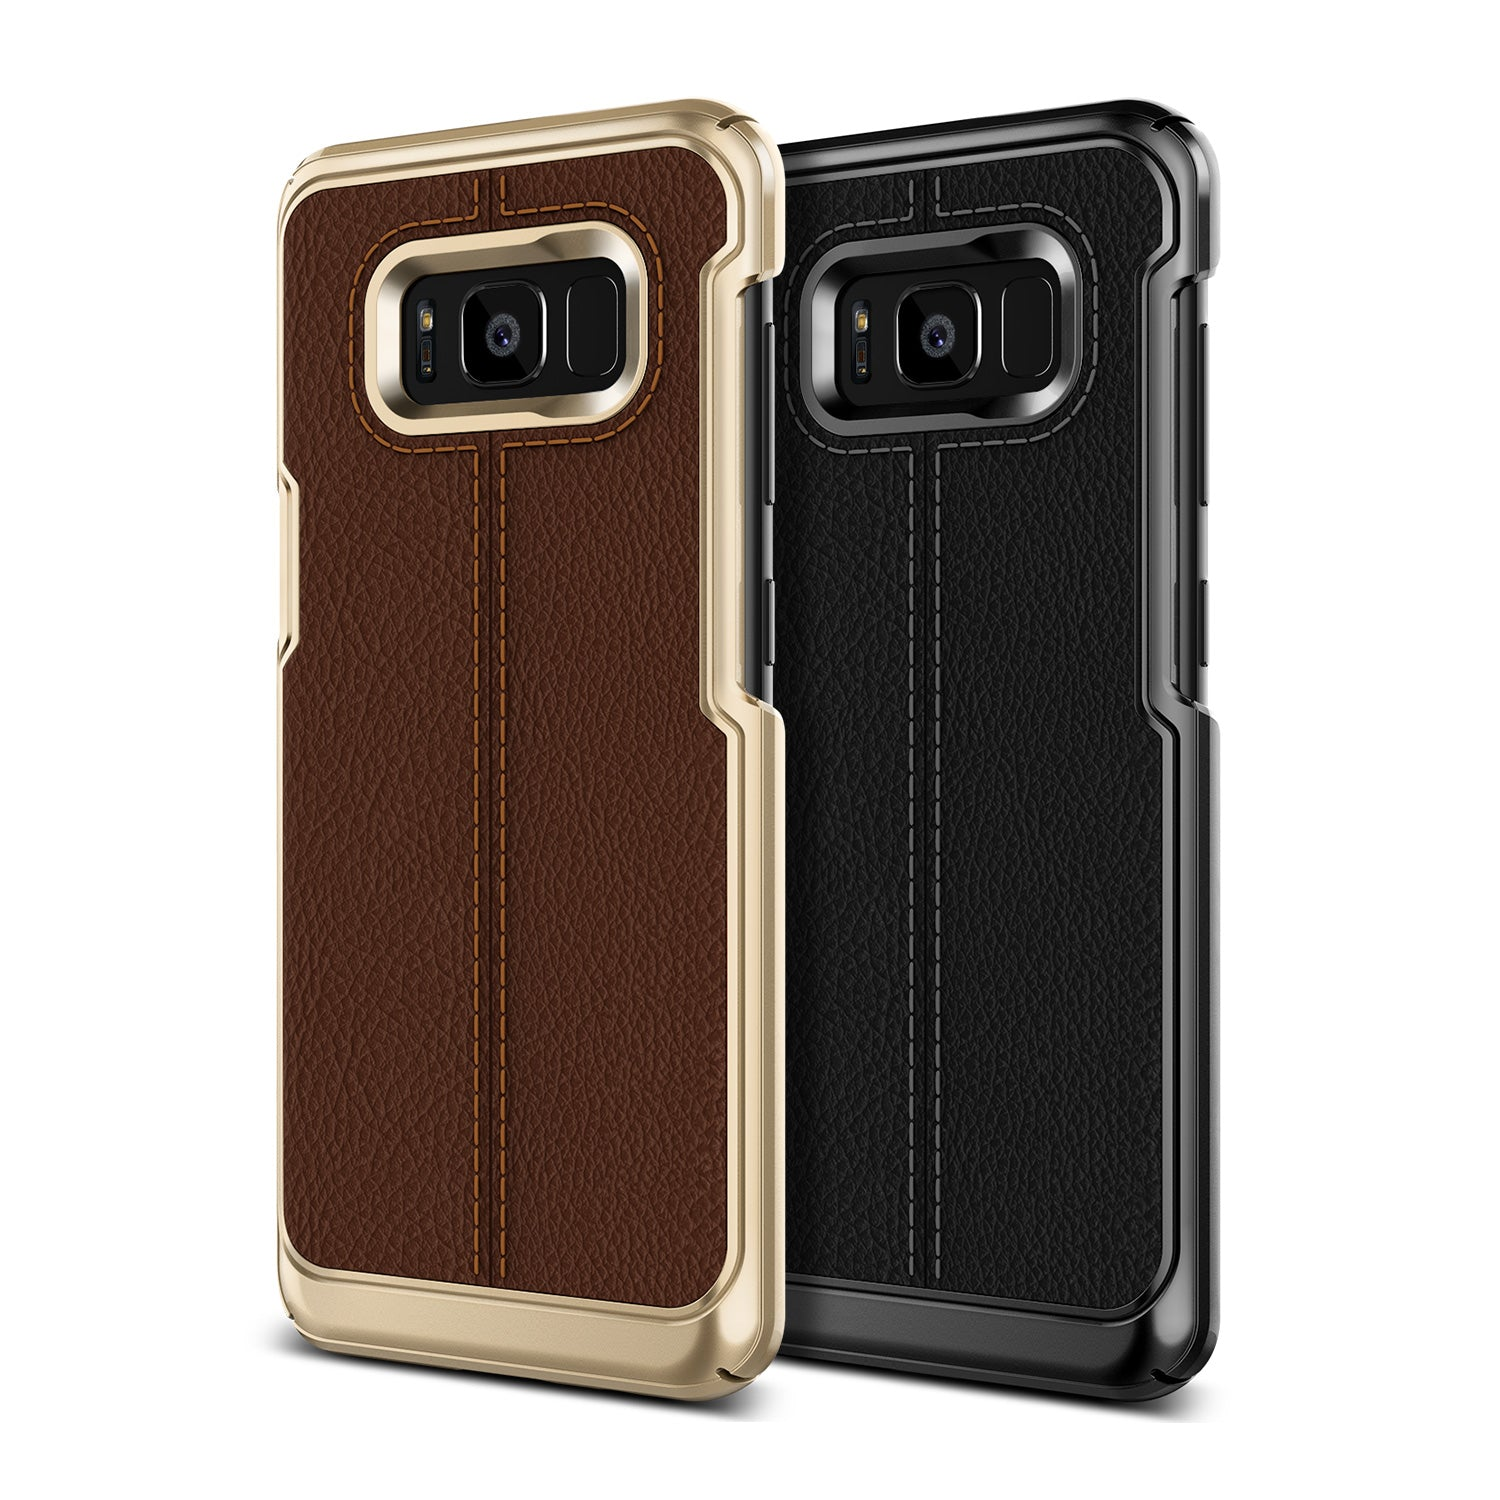 Simpli Mod Galaxy S8 case from VRS Design